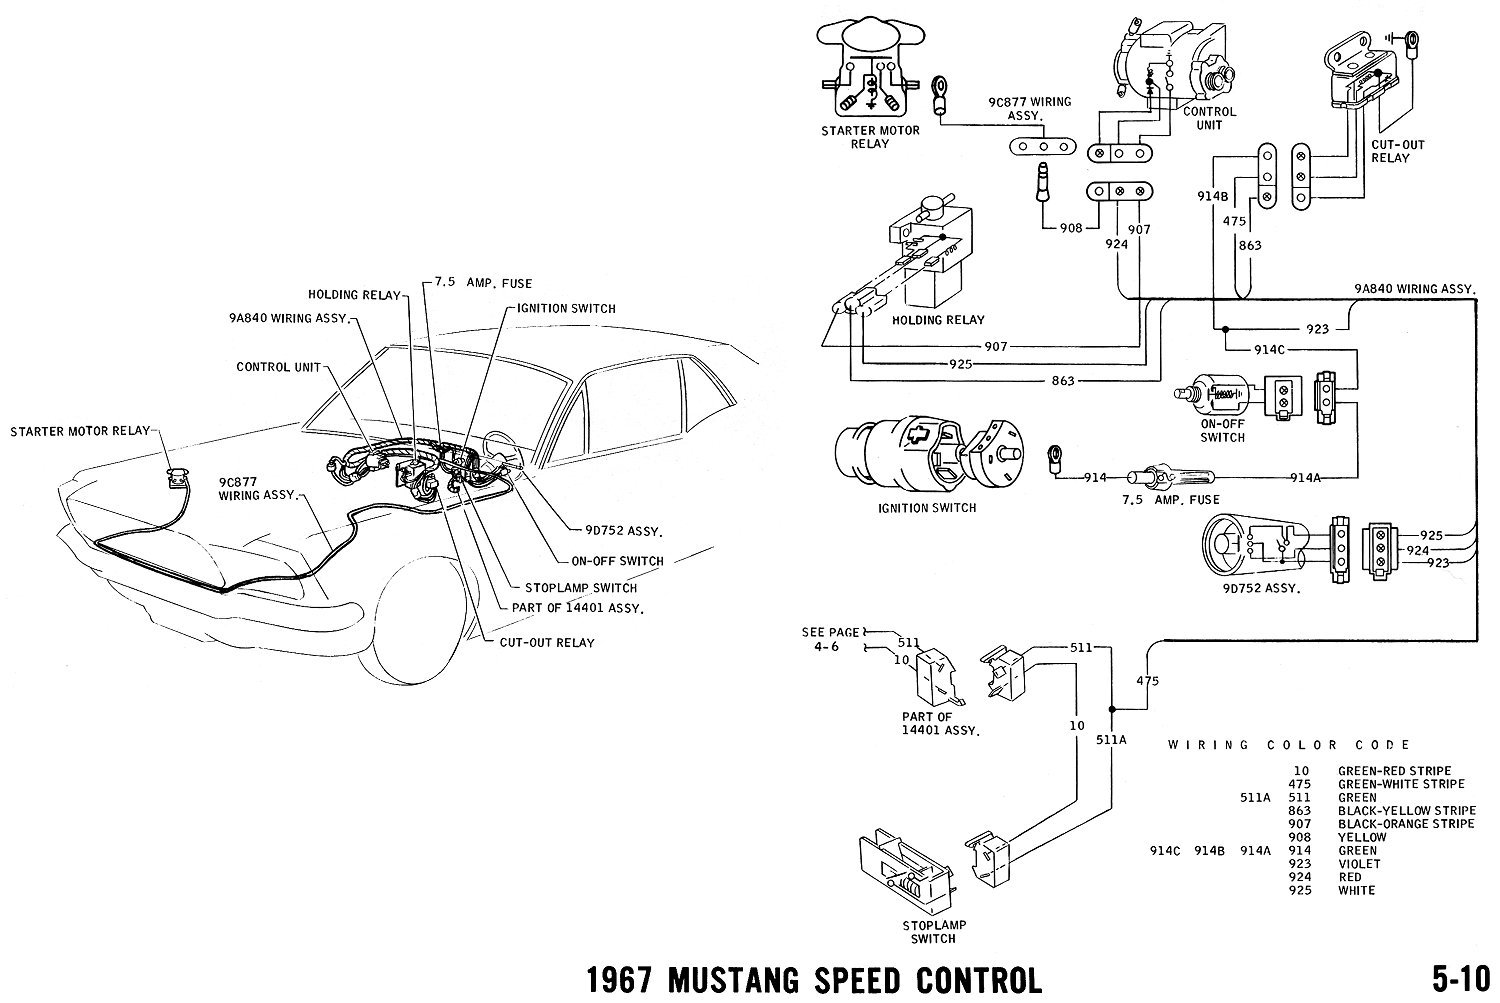 67 Ford Mustang Alternator Wiring Diagram | Wiring Diagram  Ford Mustang Alternator Wiring Diagram on ford one wire alternator diagram, ford alternator wiring harness, ford truck alternator diagram, ford alternator parts diagram, ford external voltage regulator diagram, 1968 mustang turn signal diagram, mustang wiring harness diagram, 1973 mustang electrical diagram, 1970 mustang instrument cluster diagram, basic ford solenoid wiring diagram, 1973 ford mustang wiring diagram, 1968 ford mustang wiring diagram, ford 3 wire alternator diagram, ford 1g alternator wiring, ford mustang custom sub box, ford 302 alternator wiring, 1998 chevy blazer wiring diagram, 1966 ford mustang wiring diagram, ford headlight wiring diagram, ford mustang solenoid wiring,